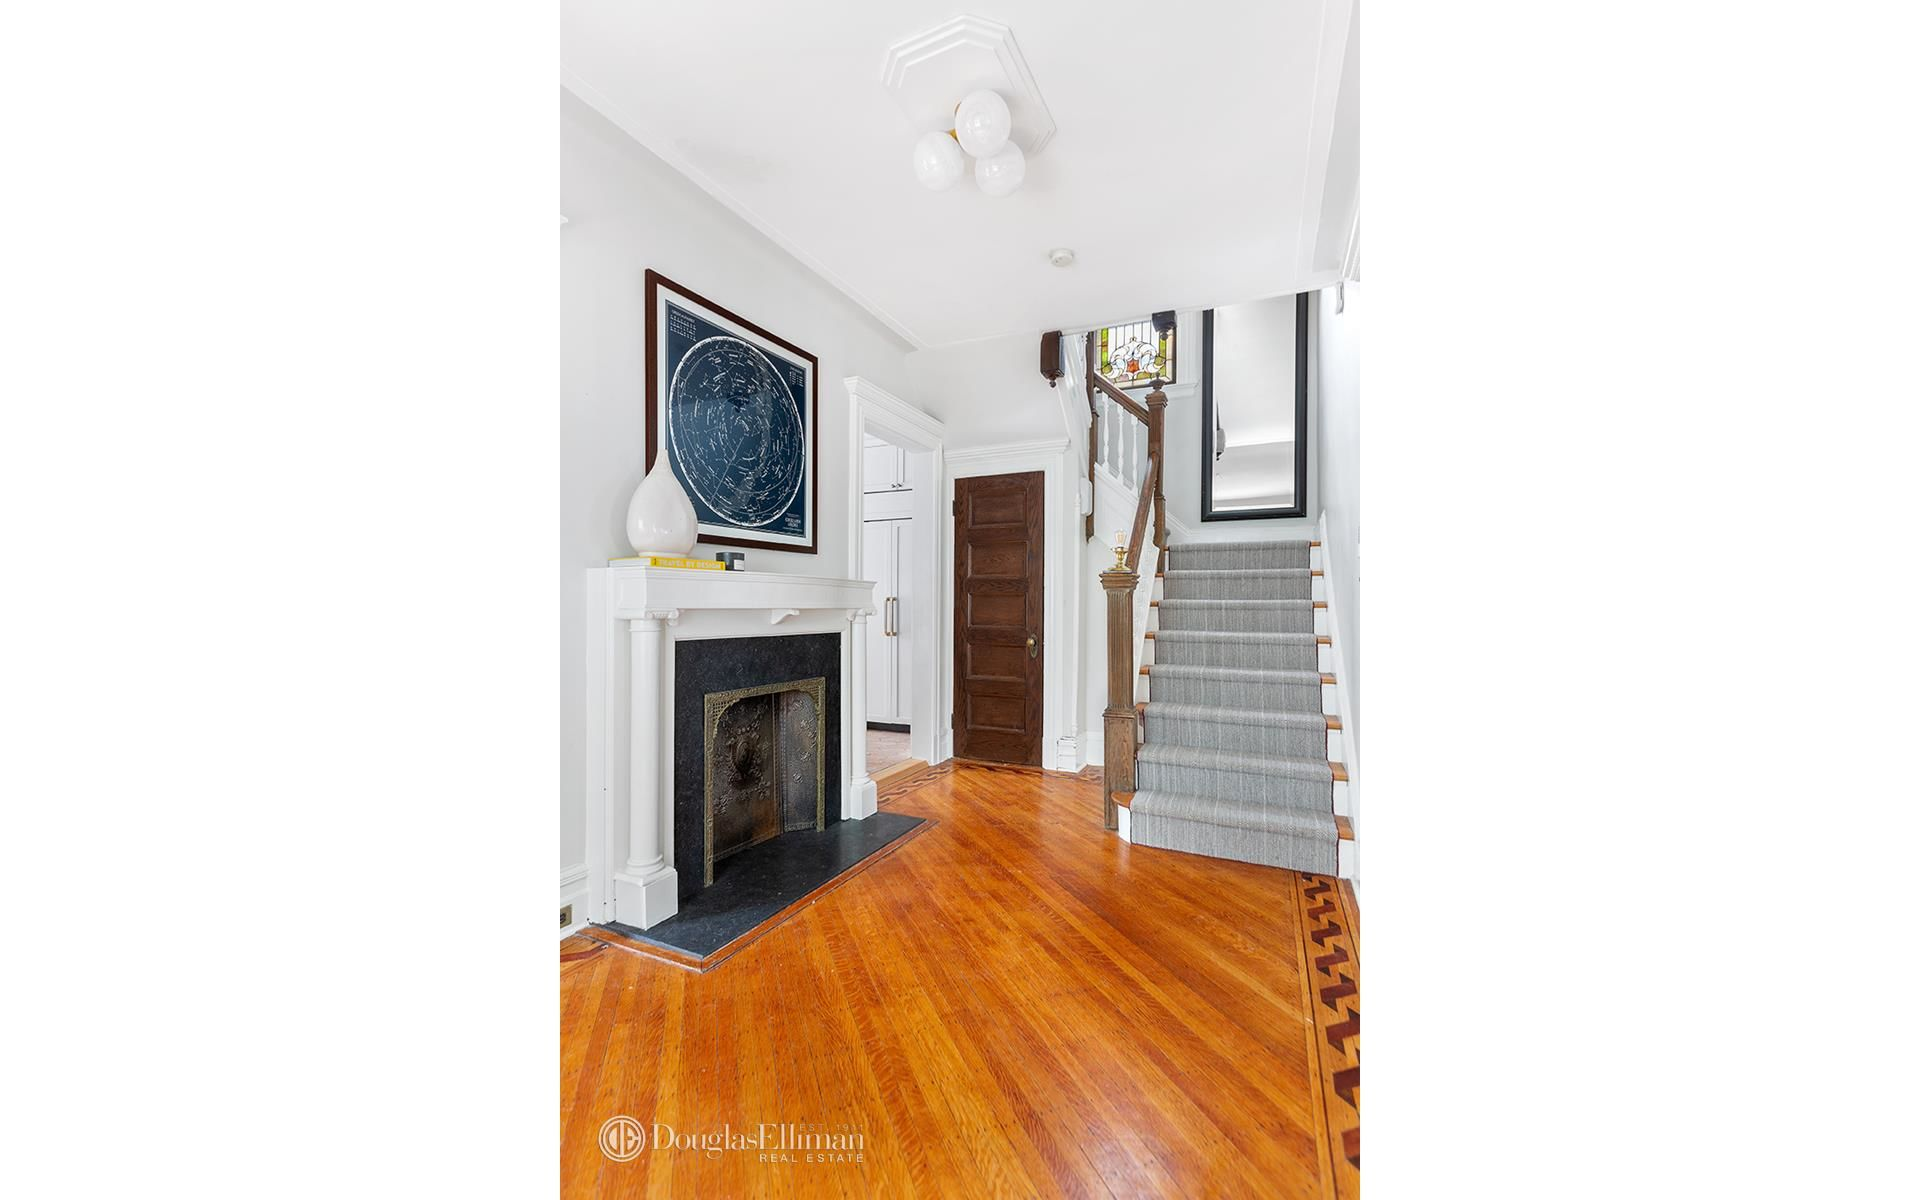 498 Westminster Rd Photo 2 - ELLIMAN-4609557